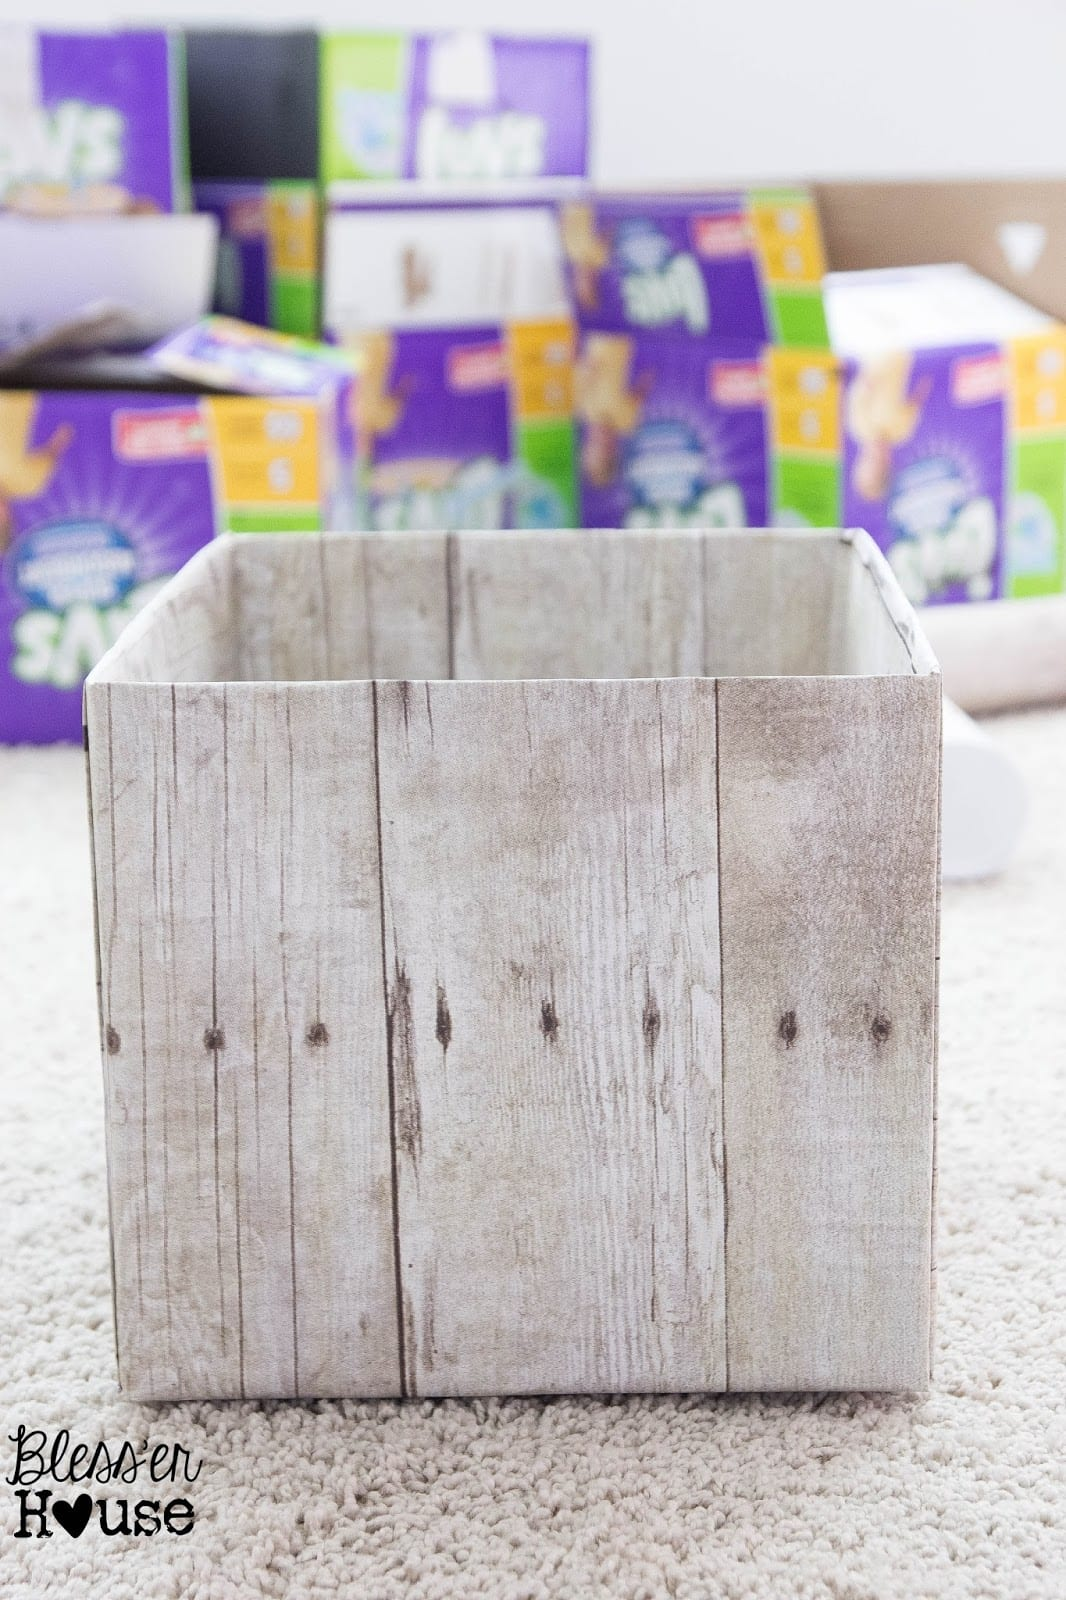 Bless'er House | DIY Weathered Wood Pantry Crates for Cheap